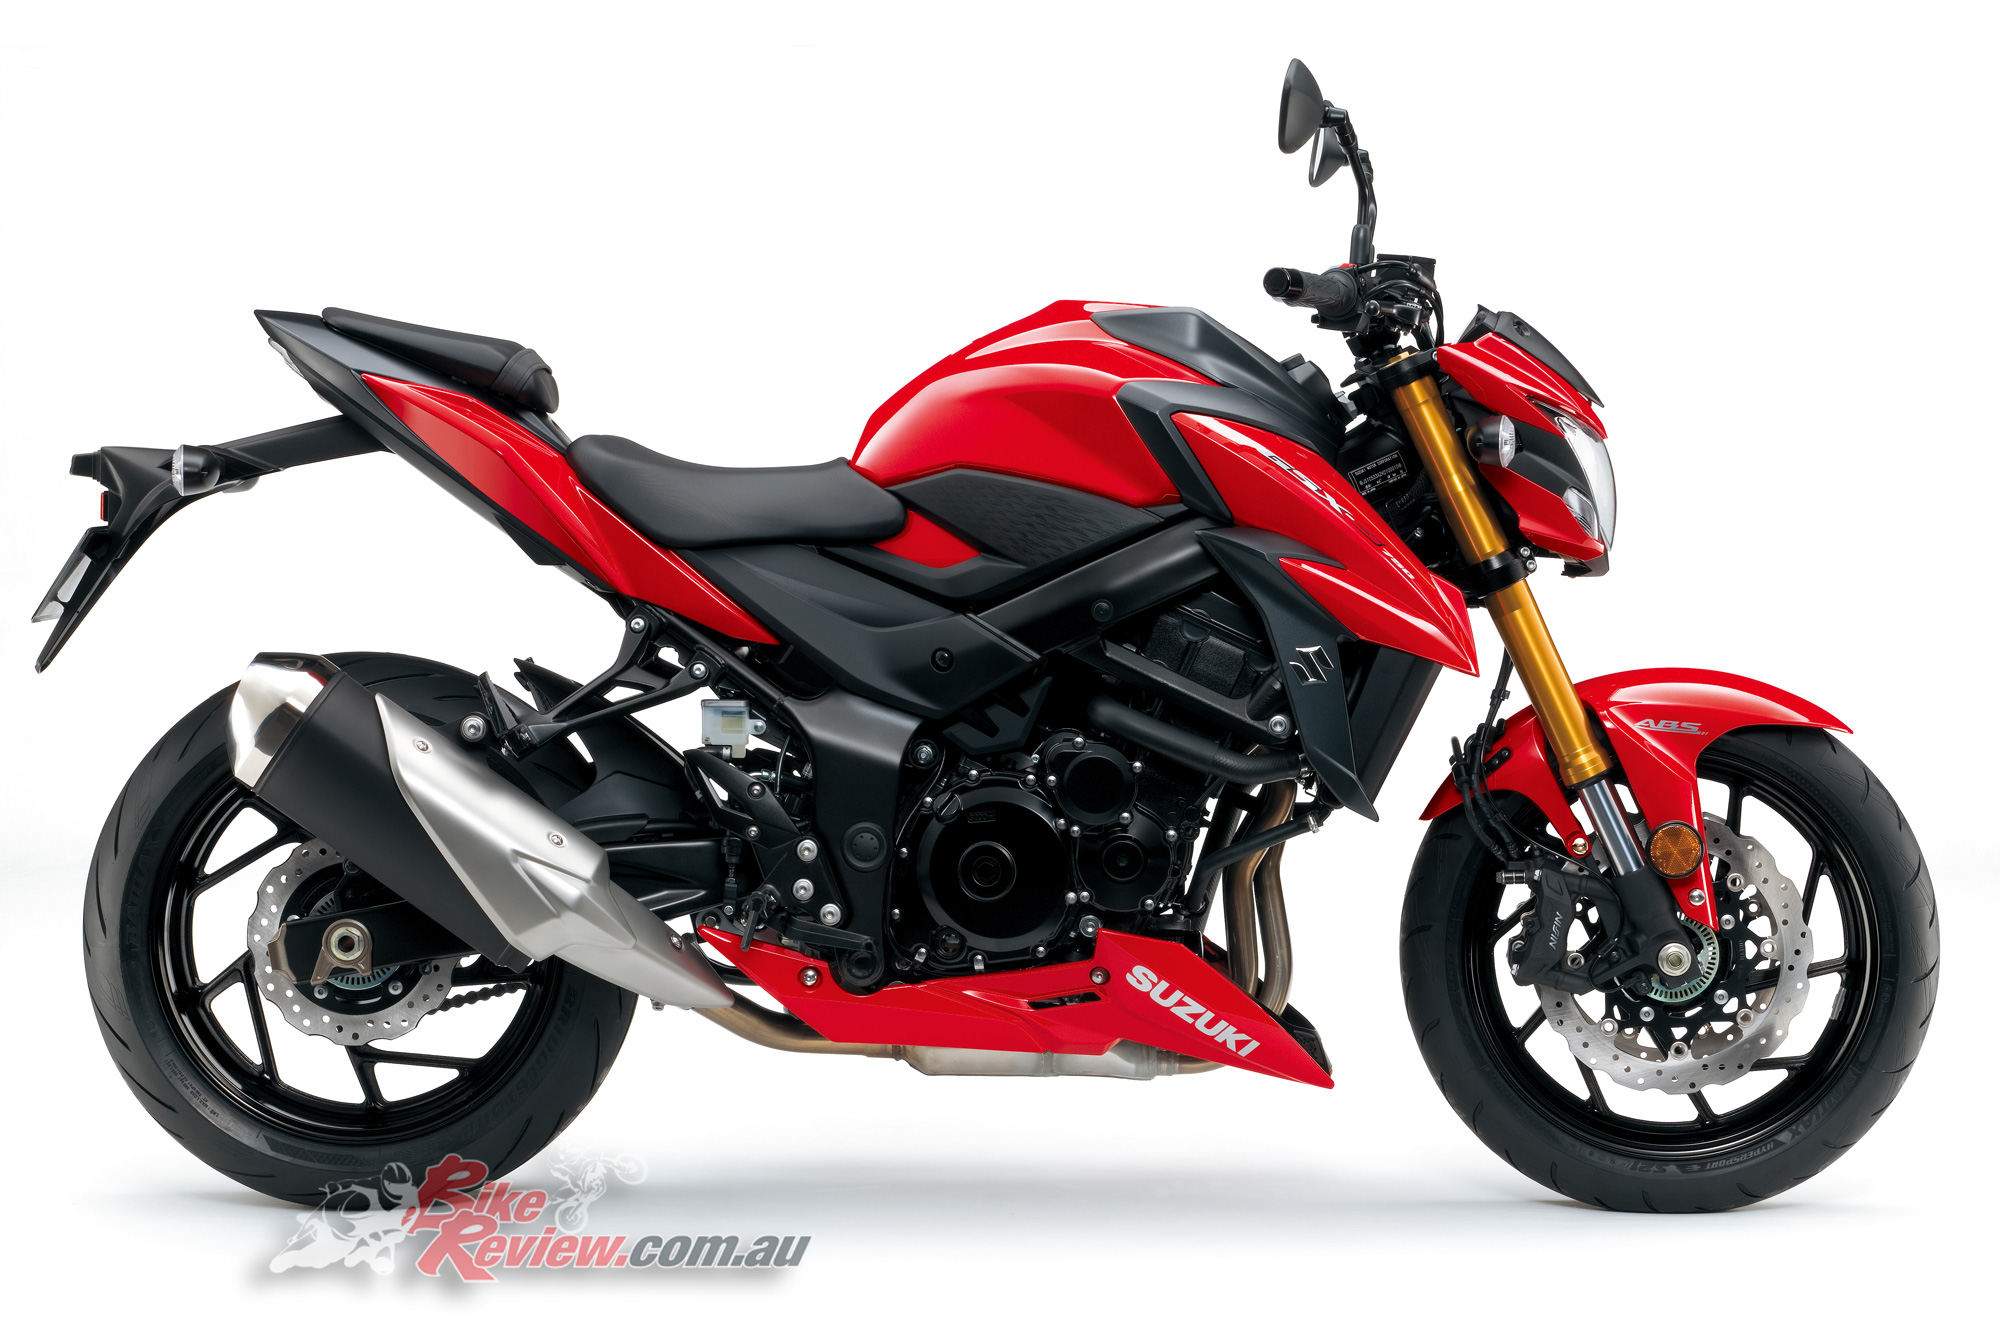 A competitive $11,490 plus on roads makes the GSX-S750 a great option, and the Mira Red was my favourite!